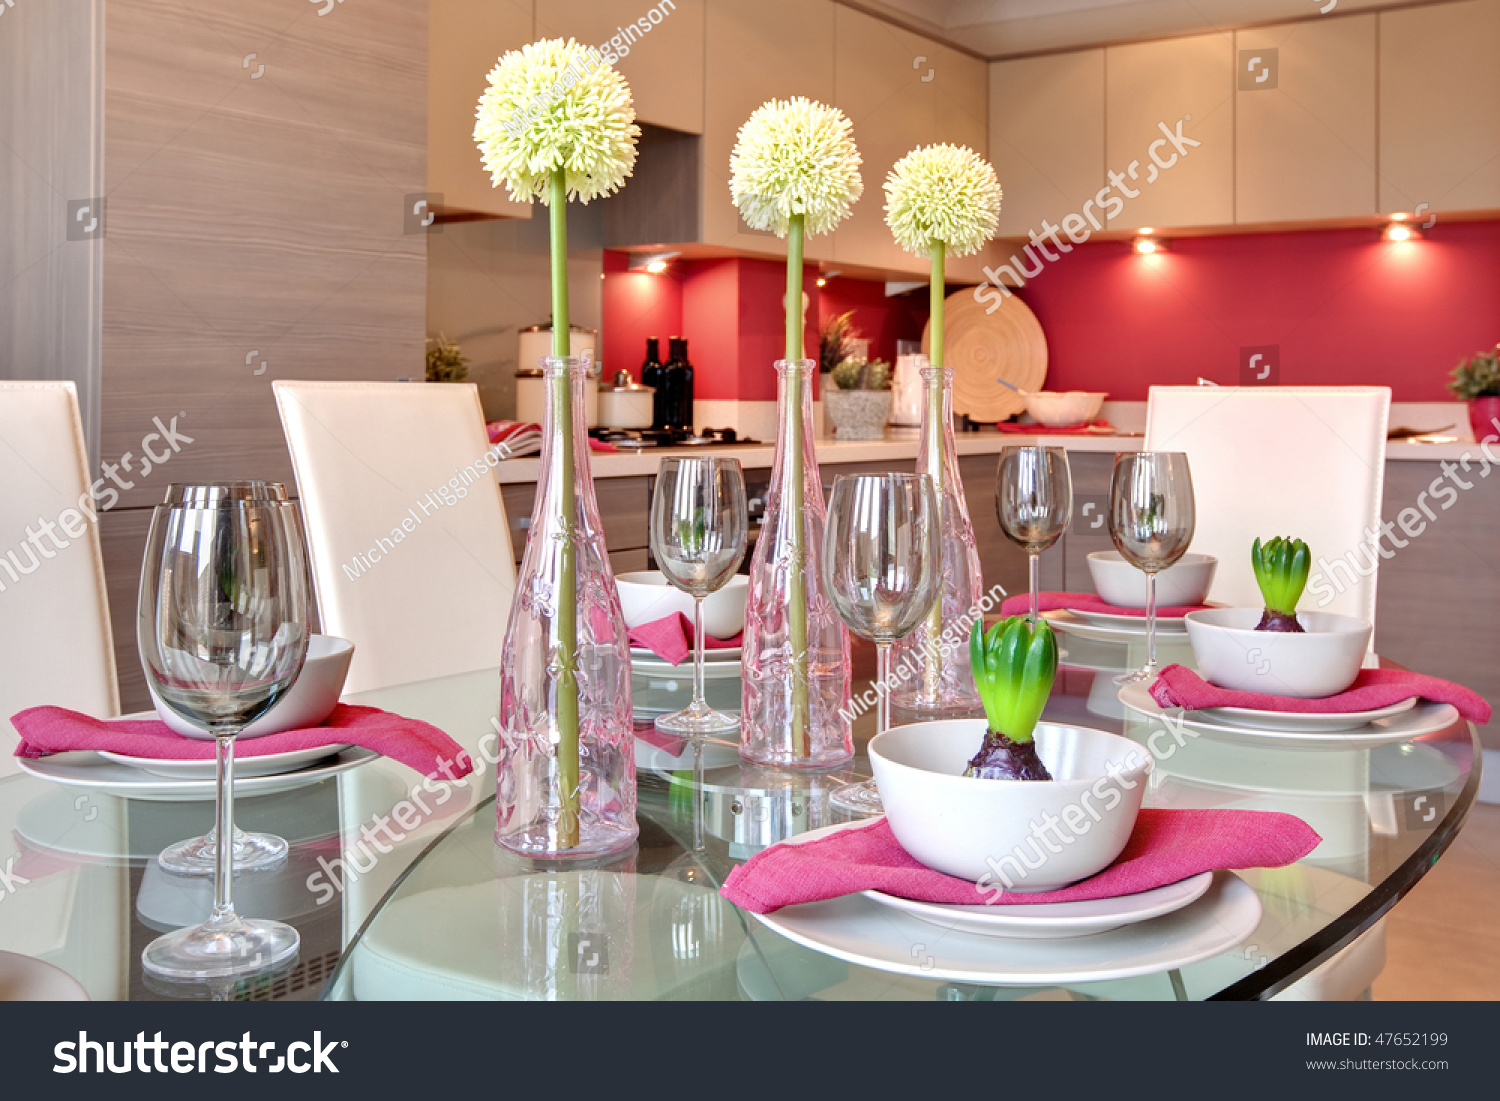 Dinner table background - Glamorous Table Setting Ready For Dinner Party With Kitchen Background